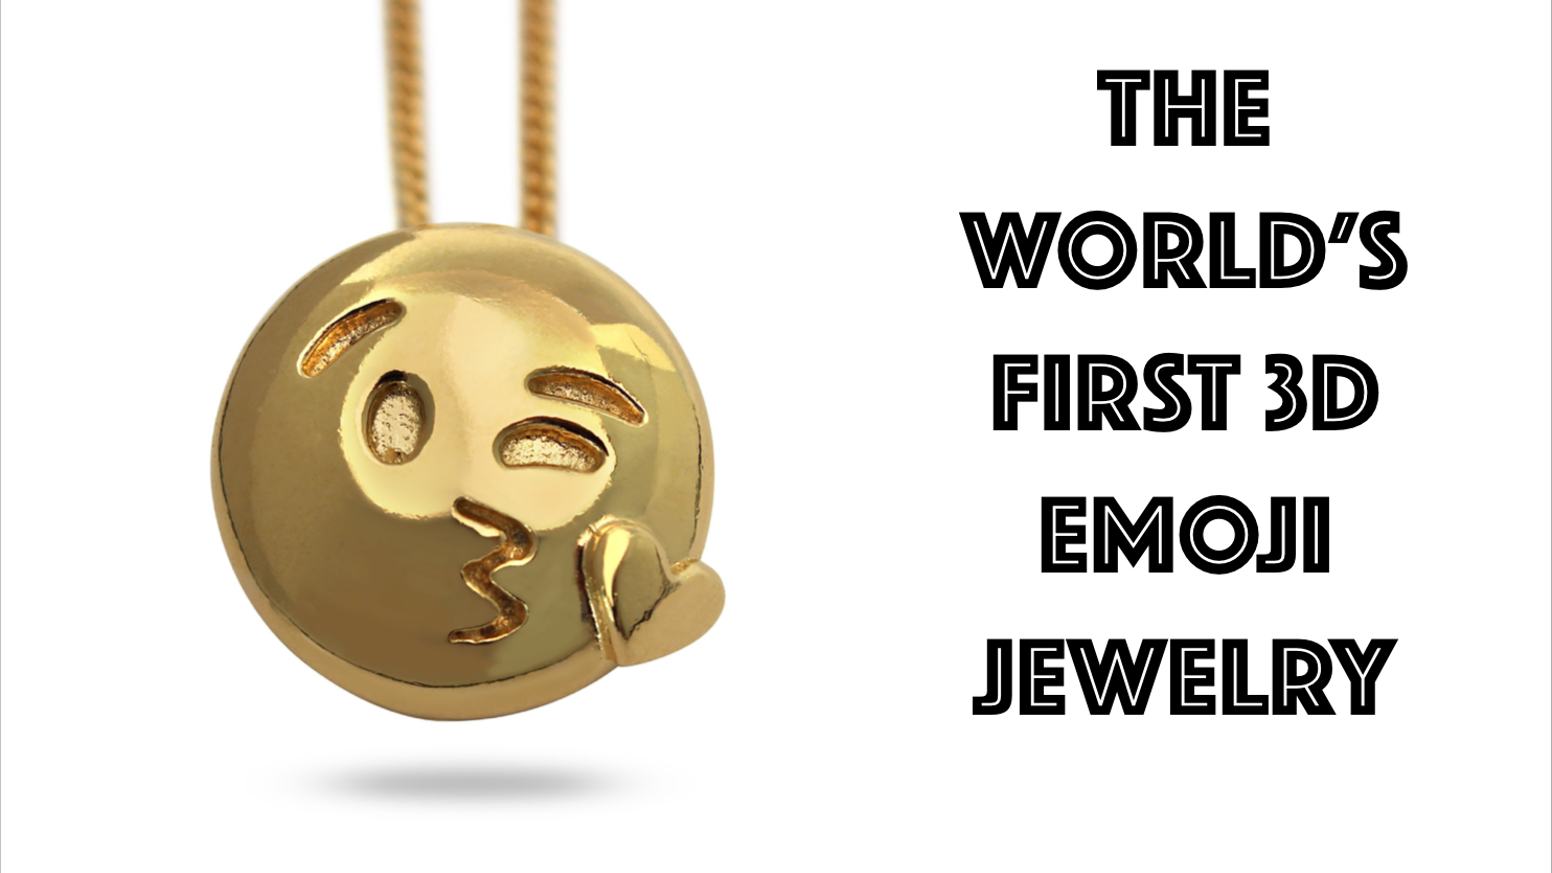 Wearable Emotions: Turning your favorite 2D emojis into 3D jewelry pendants! Ancient practices meets new technology!